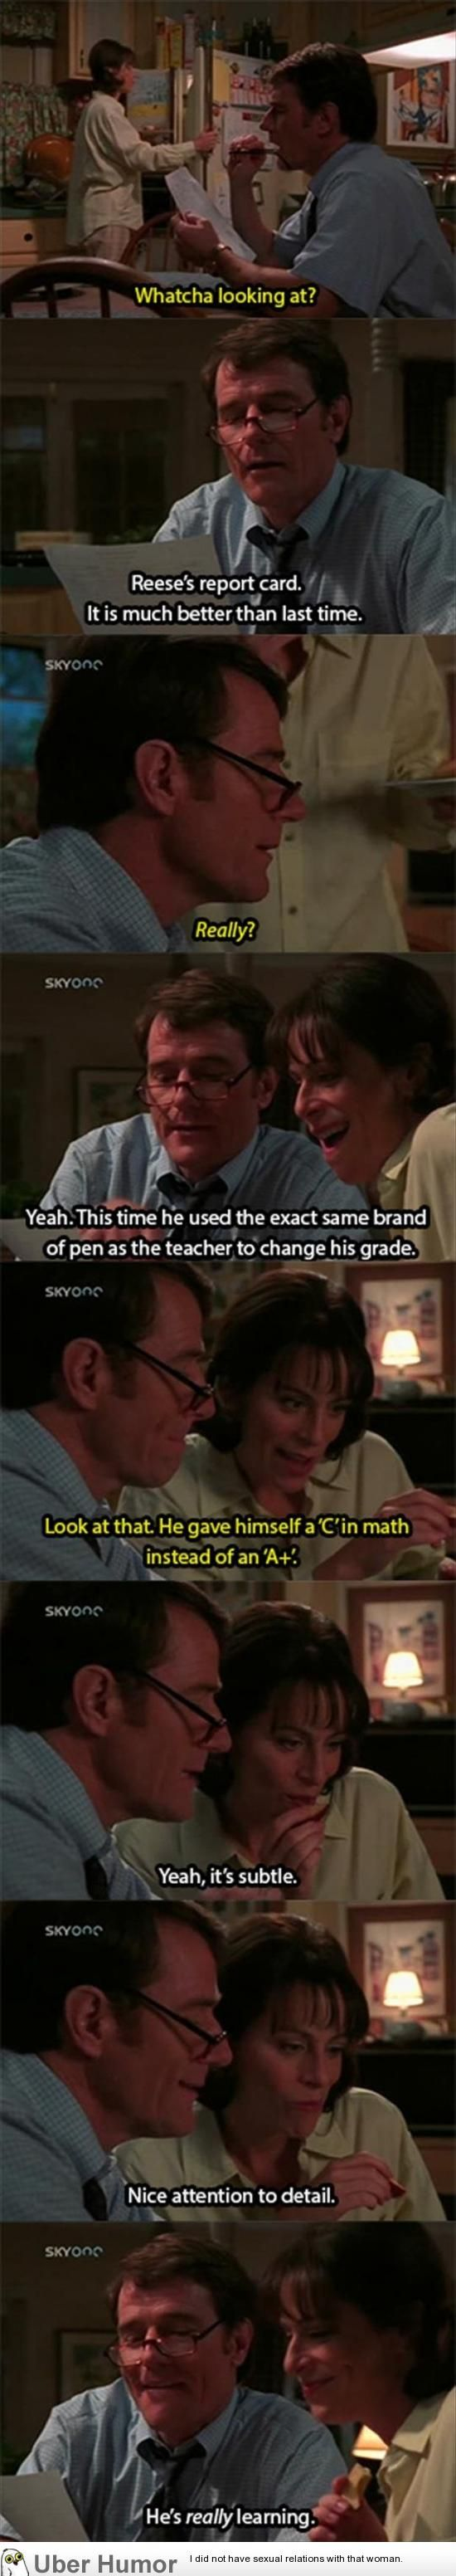 Haha Malcom in the MIddle